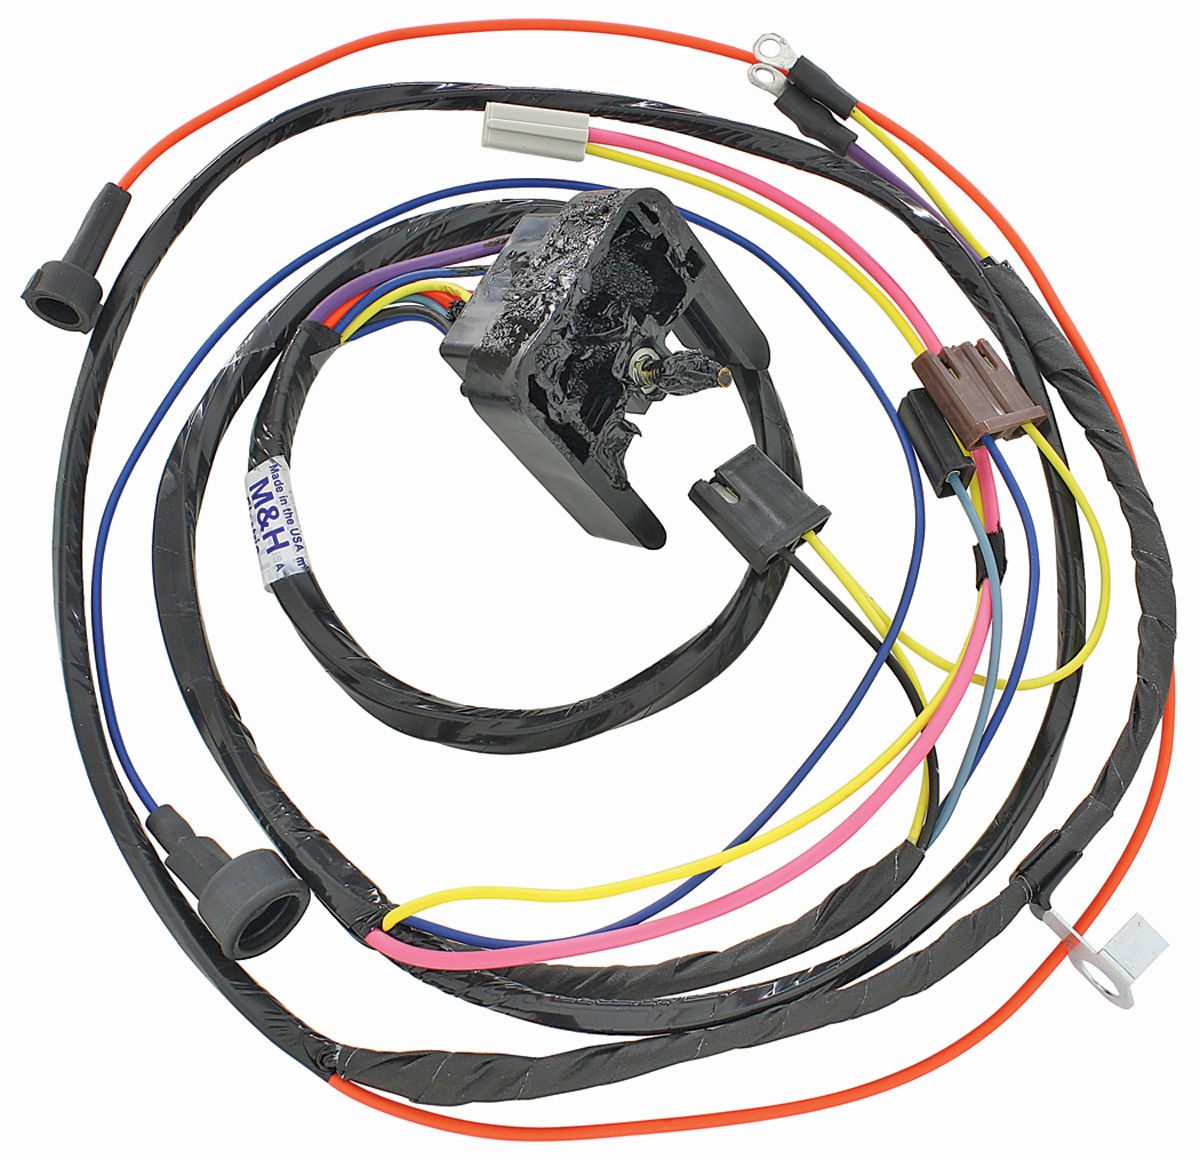 hight resolution of m u0026h chevelle engine harness 396 hei w warning lights fits 1968 69chevelle engine harness